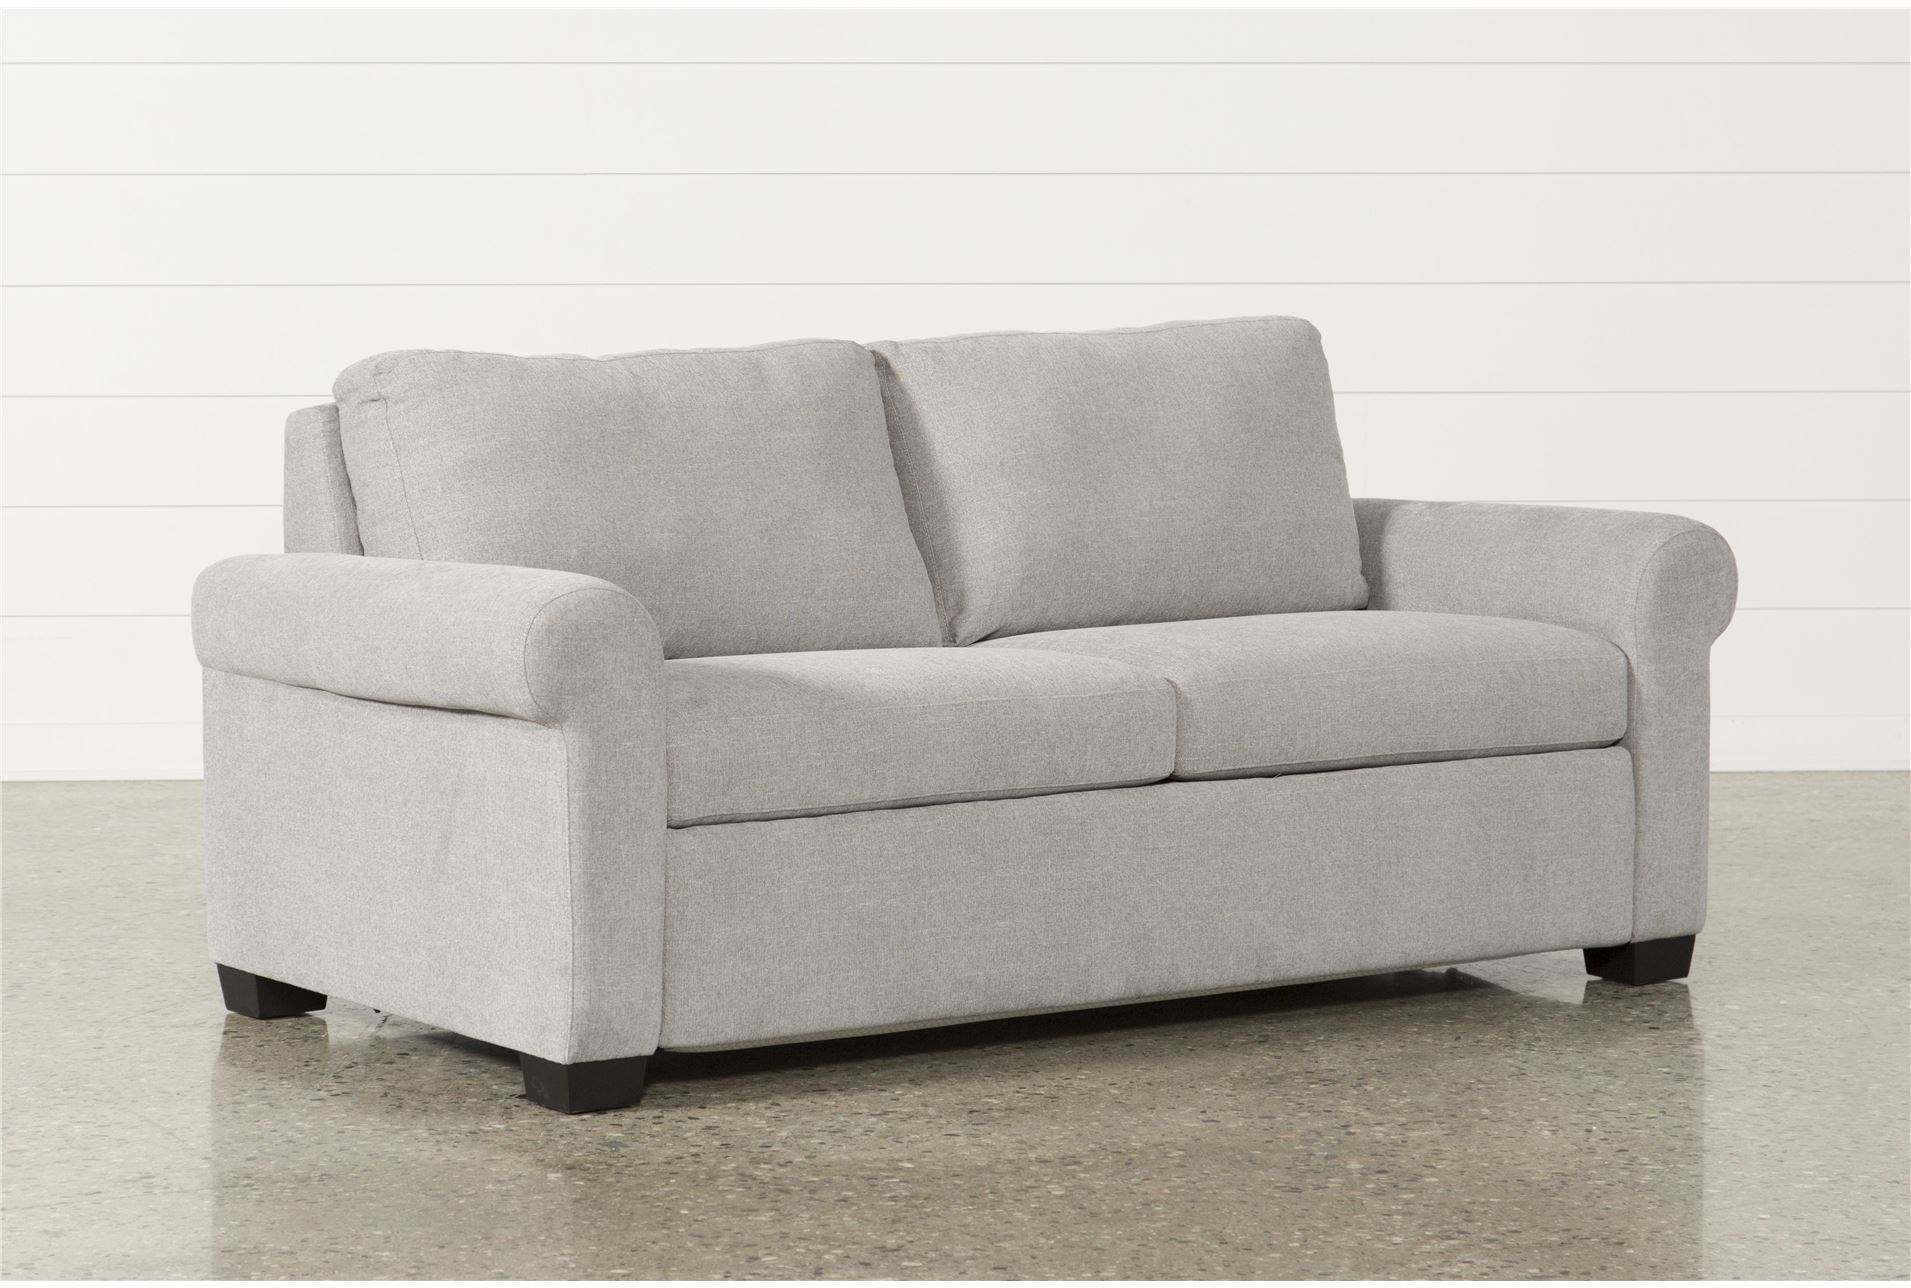 Alexis Silverpine Queen Sofa Sleeper Living Spaces ~ Queen Sleeper Sofa Dimensions When Open